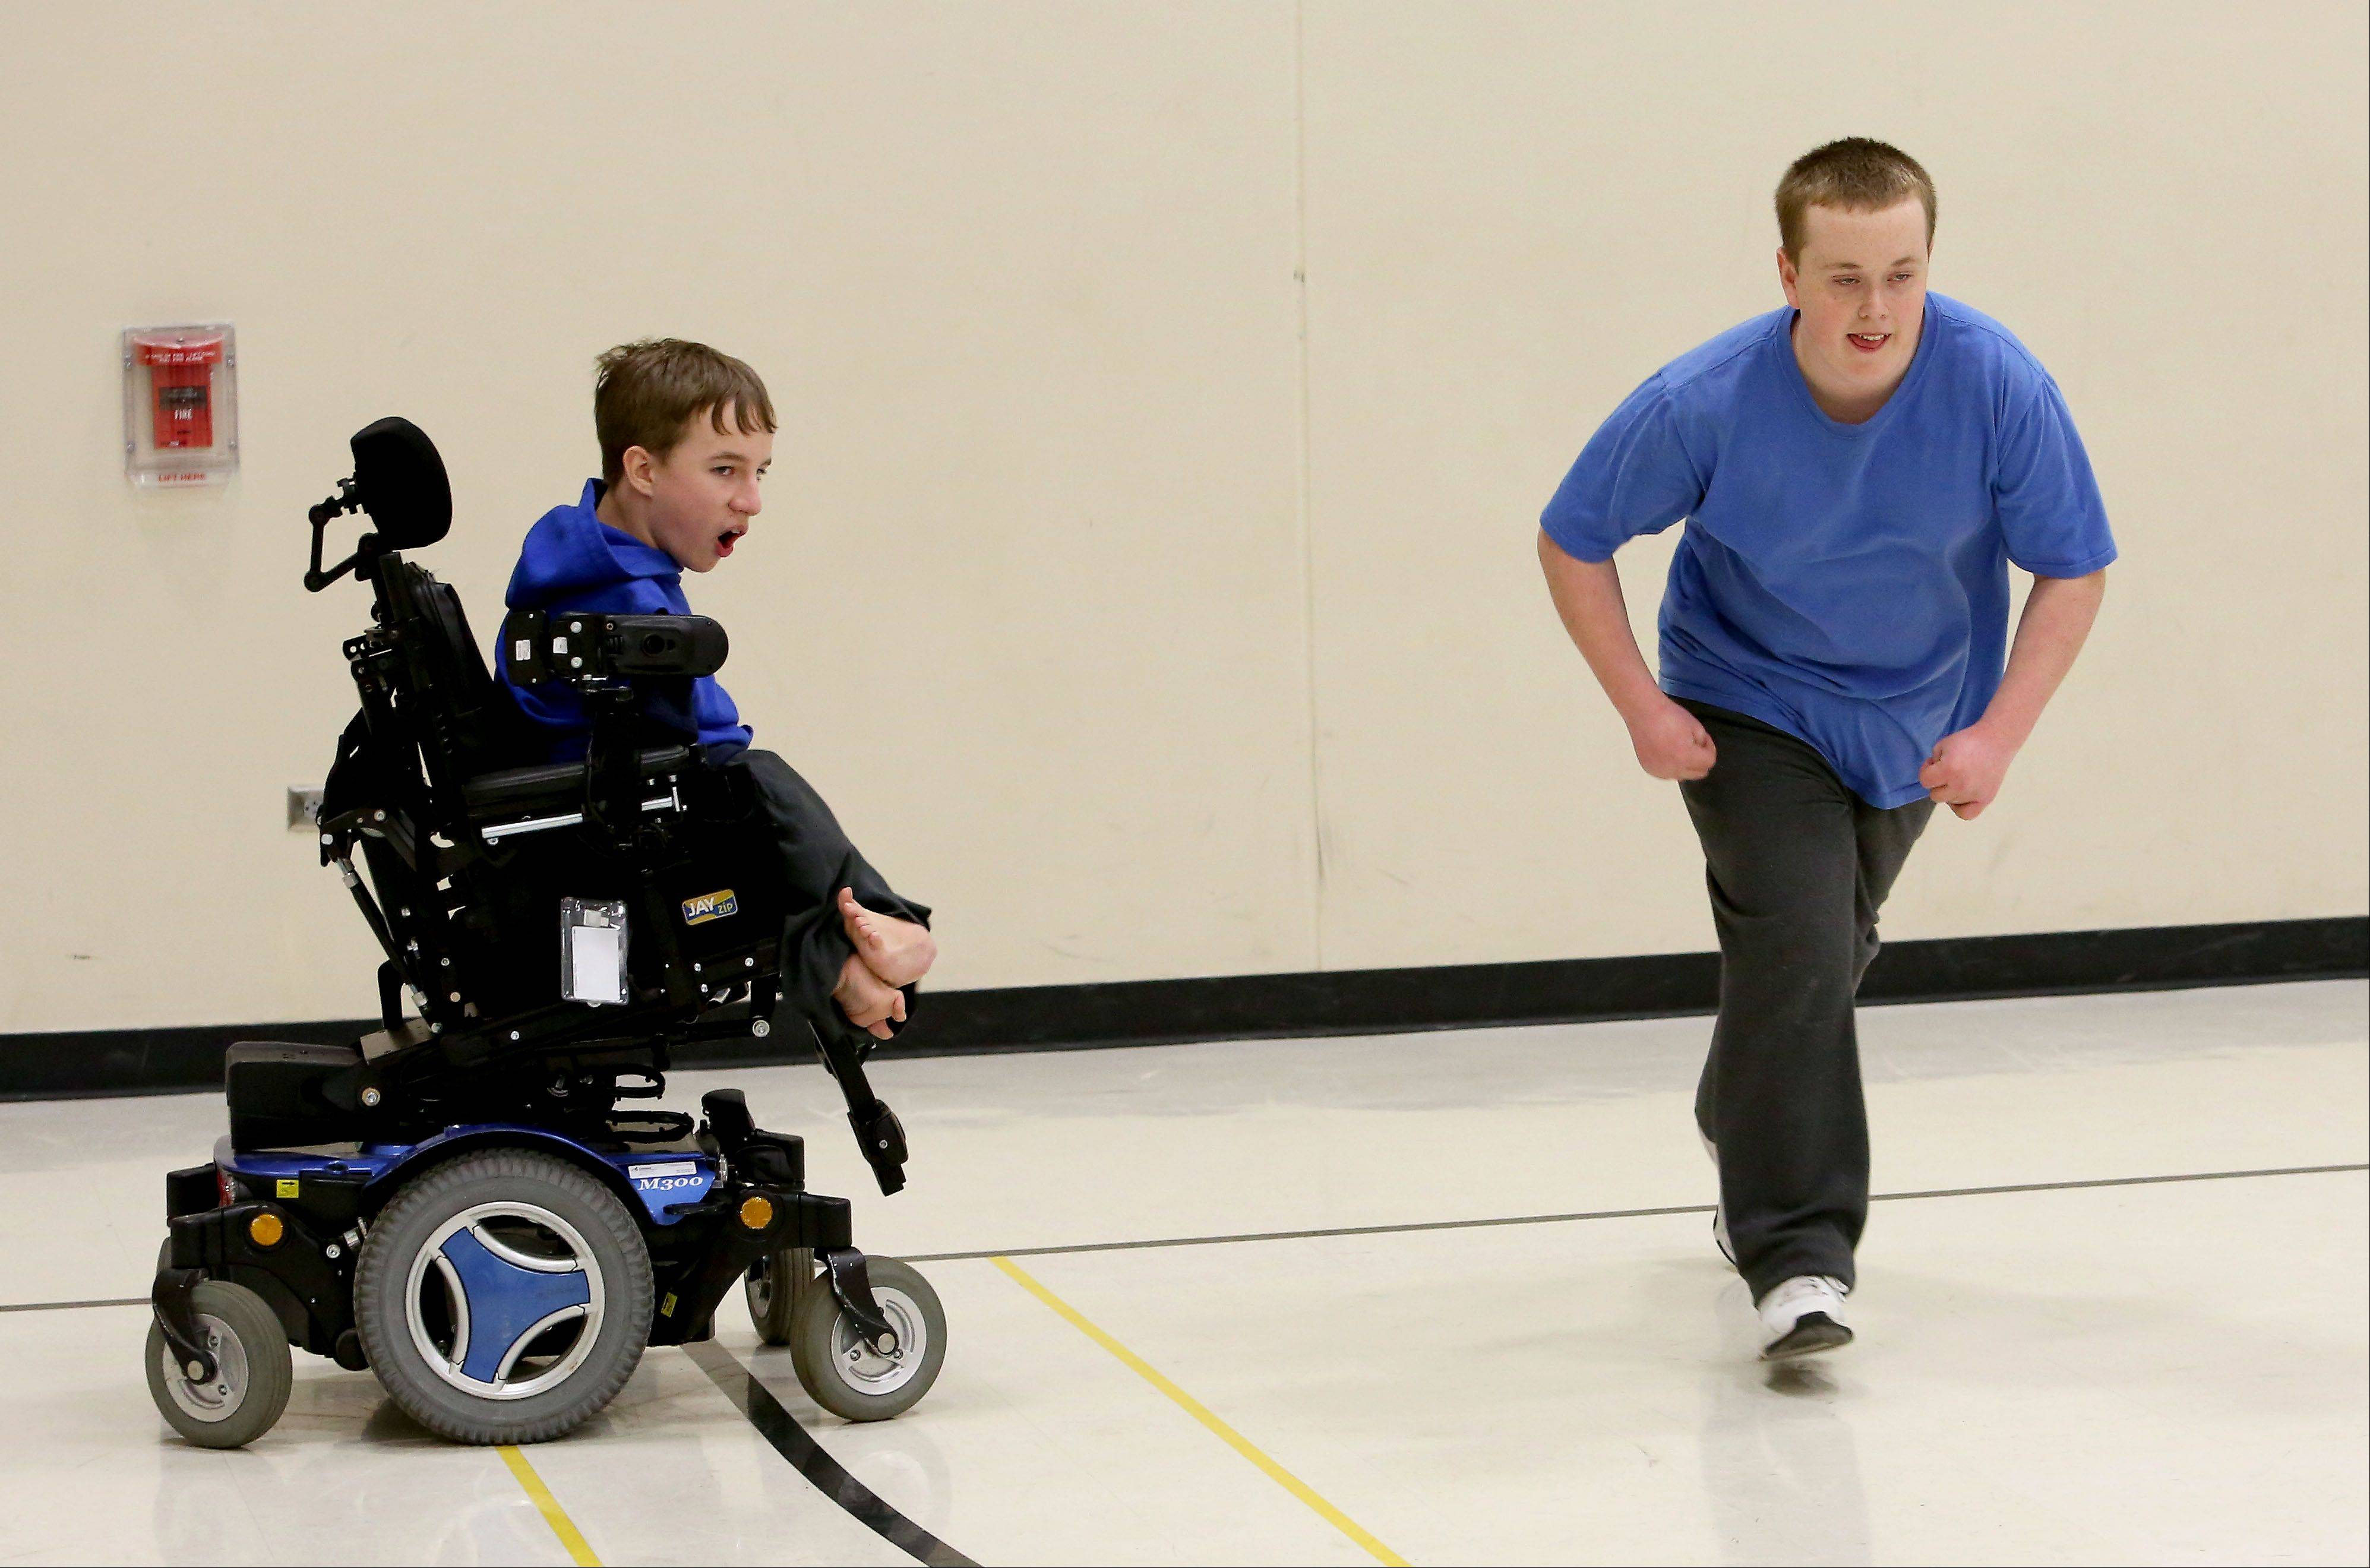 Connor McHugh, left, encourages Alex Starke of Wheaton as he does his sprints for the Special Olympics basketball and track teams at Hubble Middle School in Warrenville.